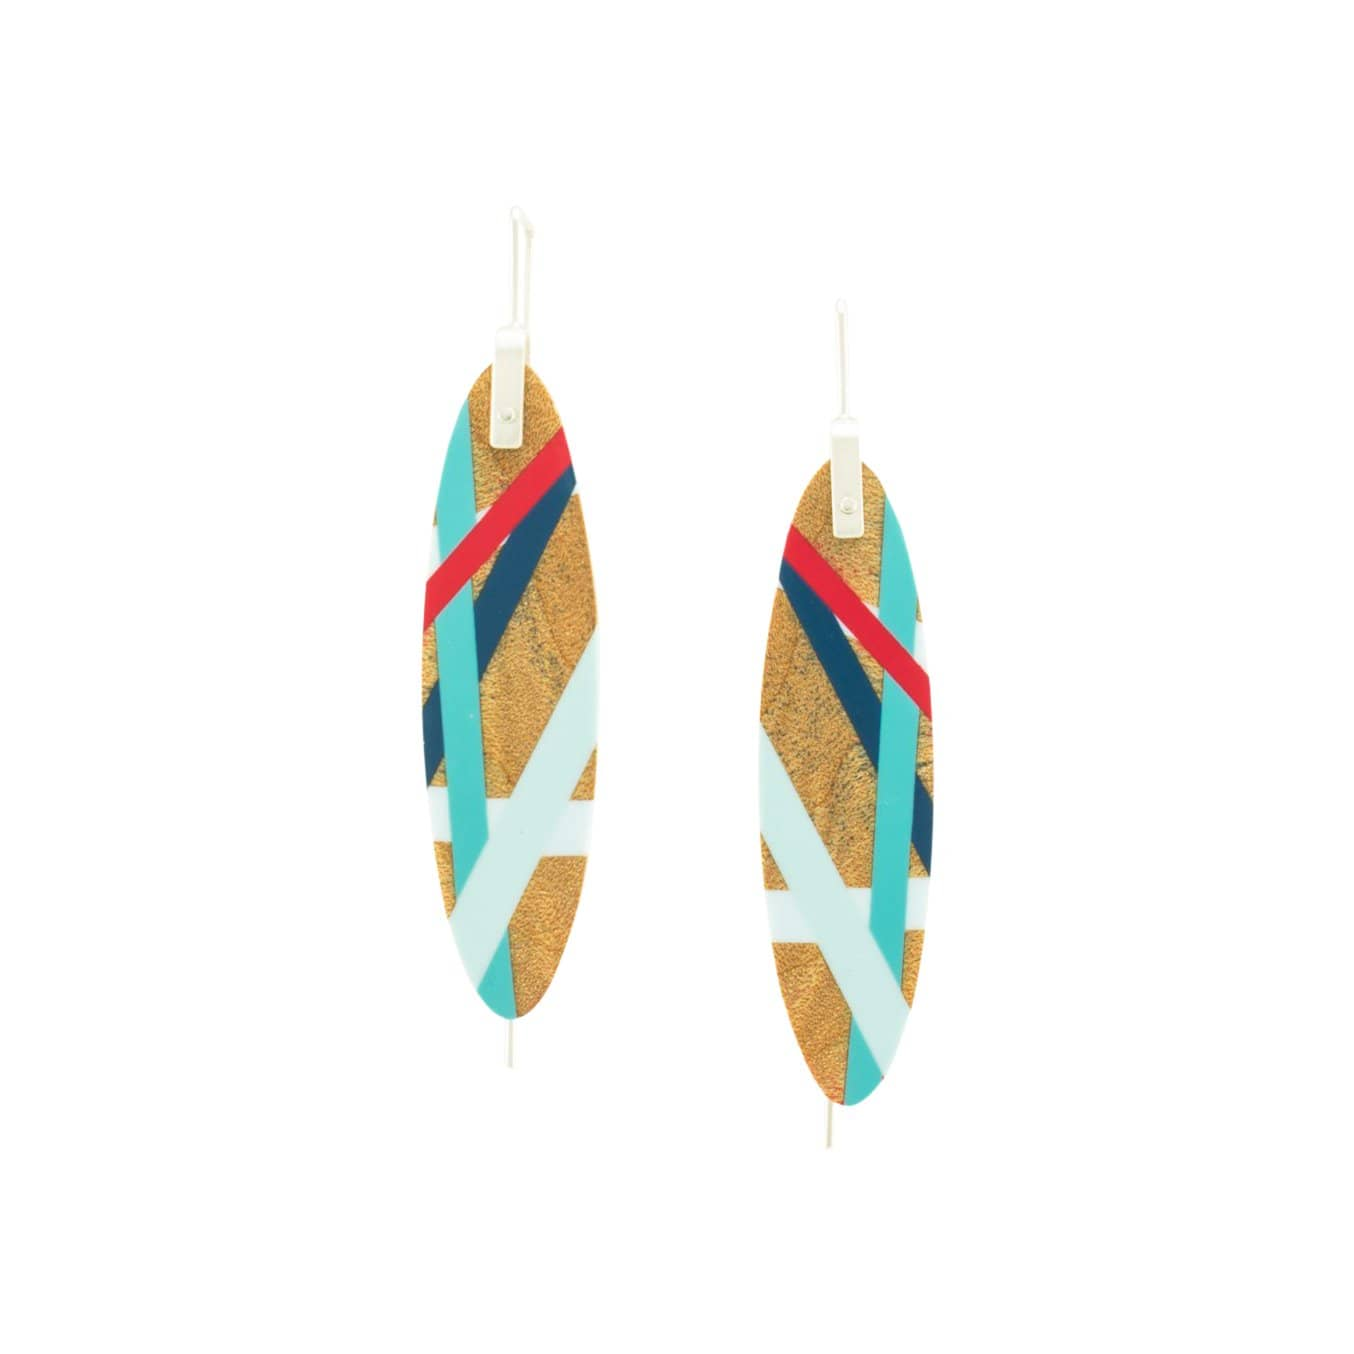 Laura Jaklitsch Jewelry Earrings Maple Wood with Red/Blue Inlay Hanging Earrings